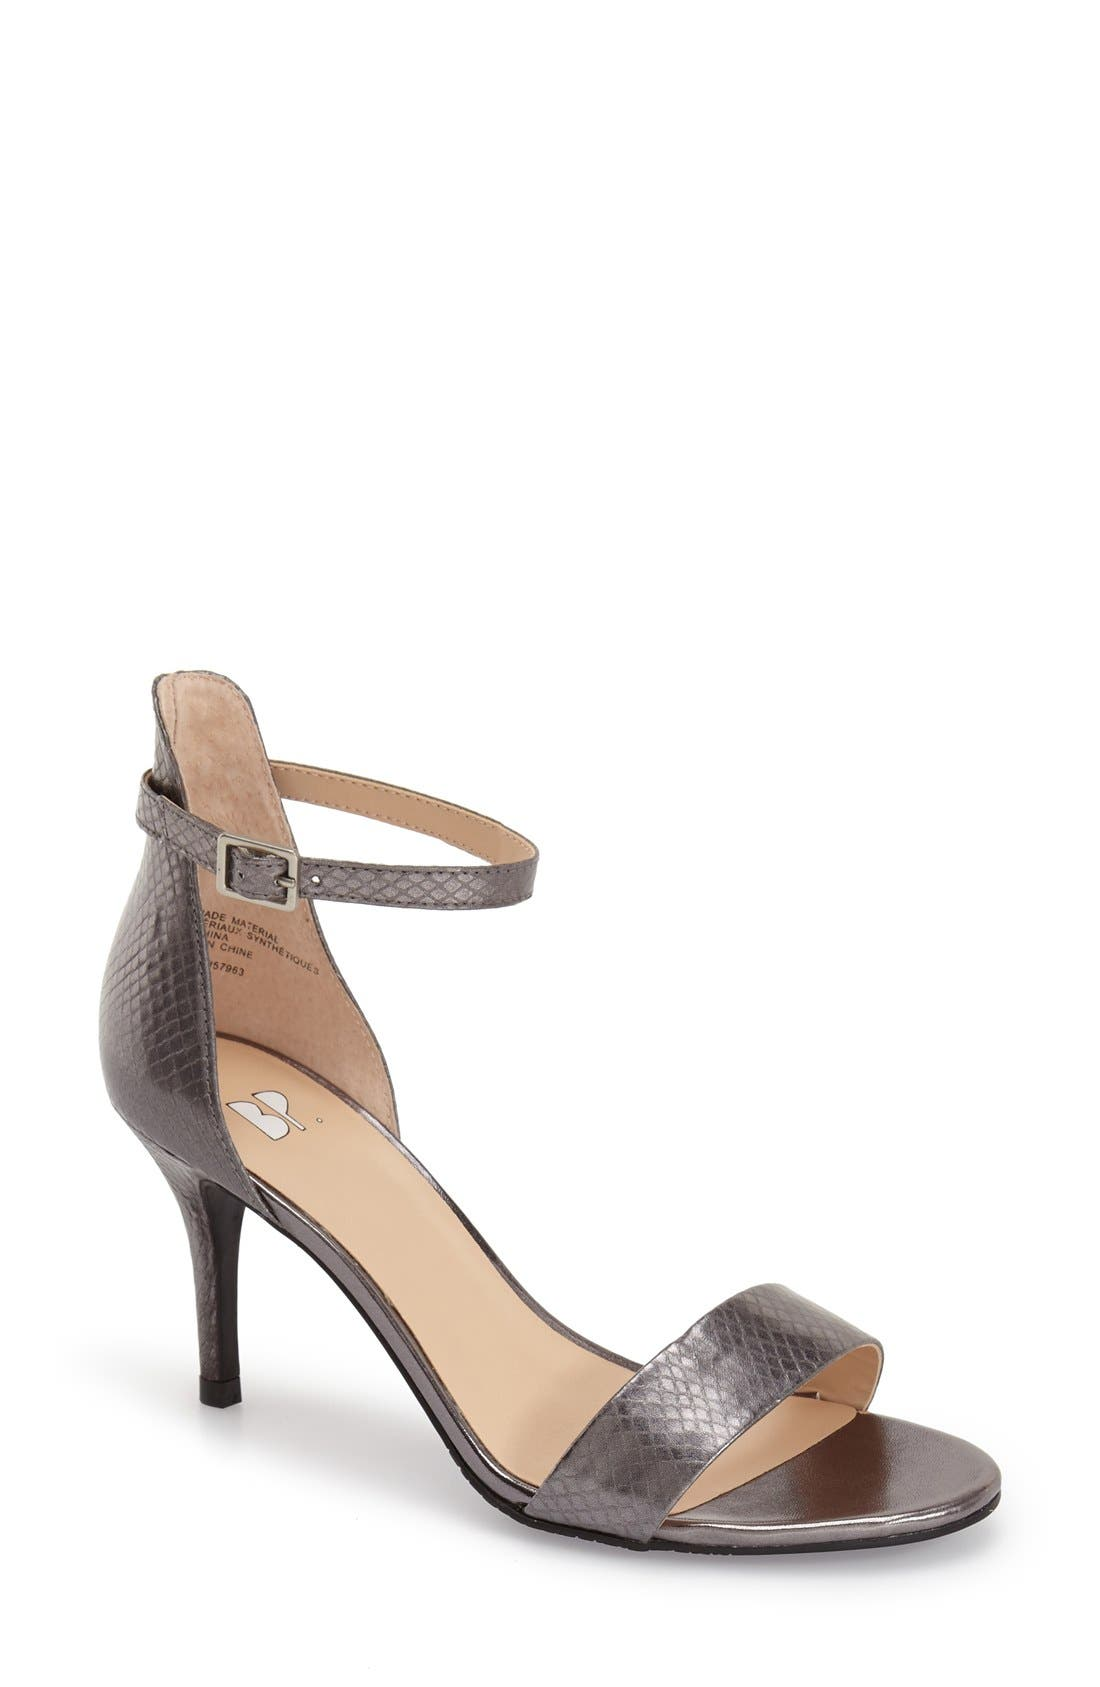 'Luminate' Open Toe Dress Sandal,                             Main thumbnail 19, color,